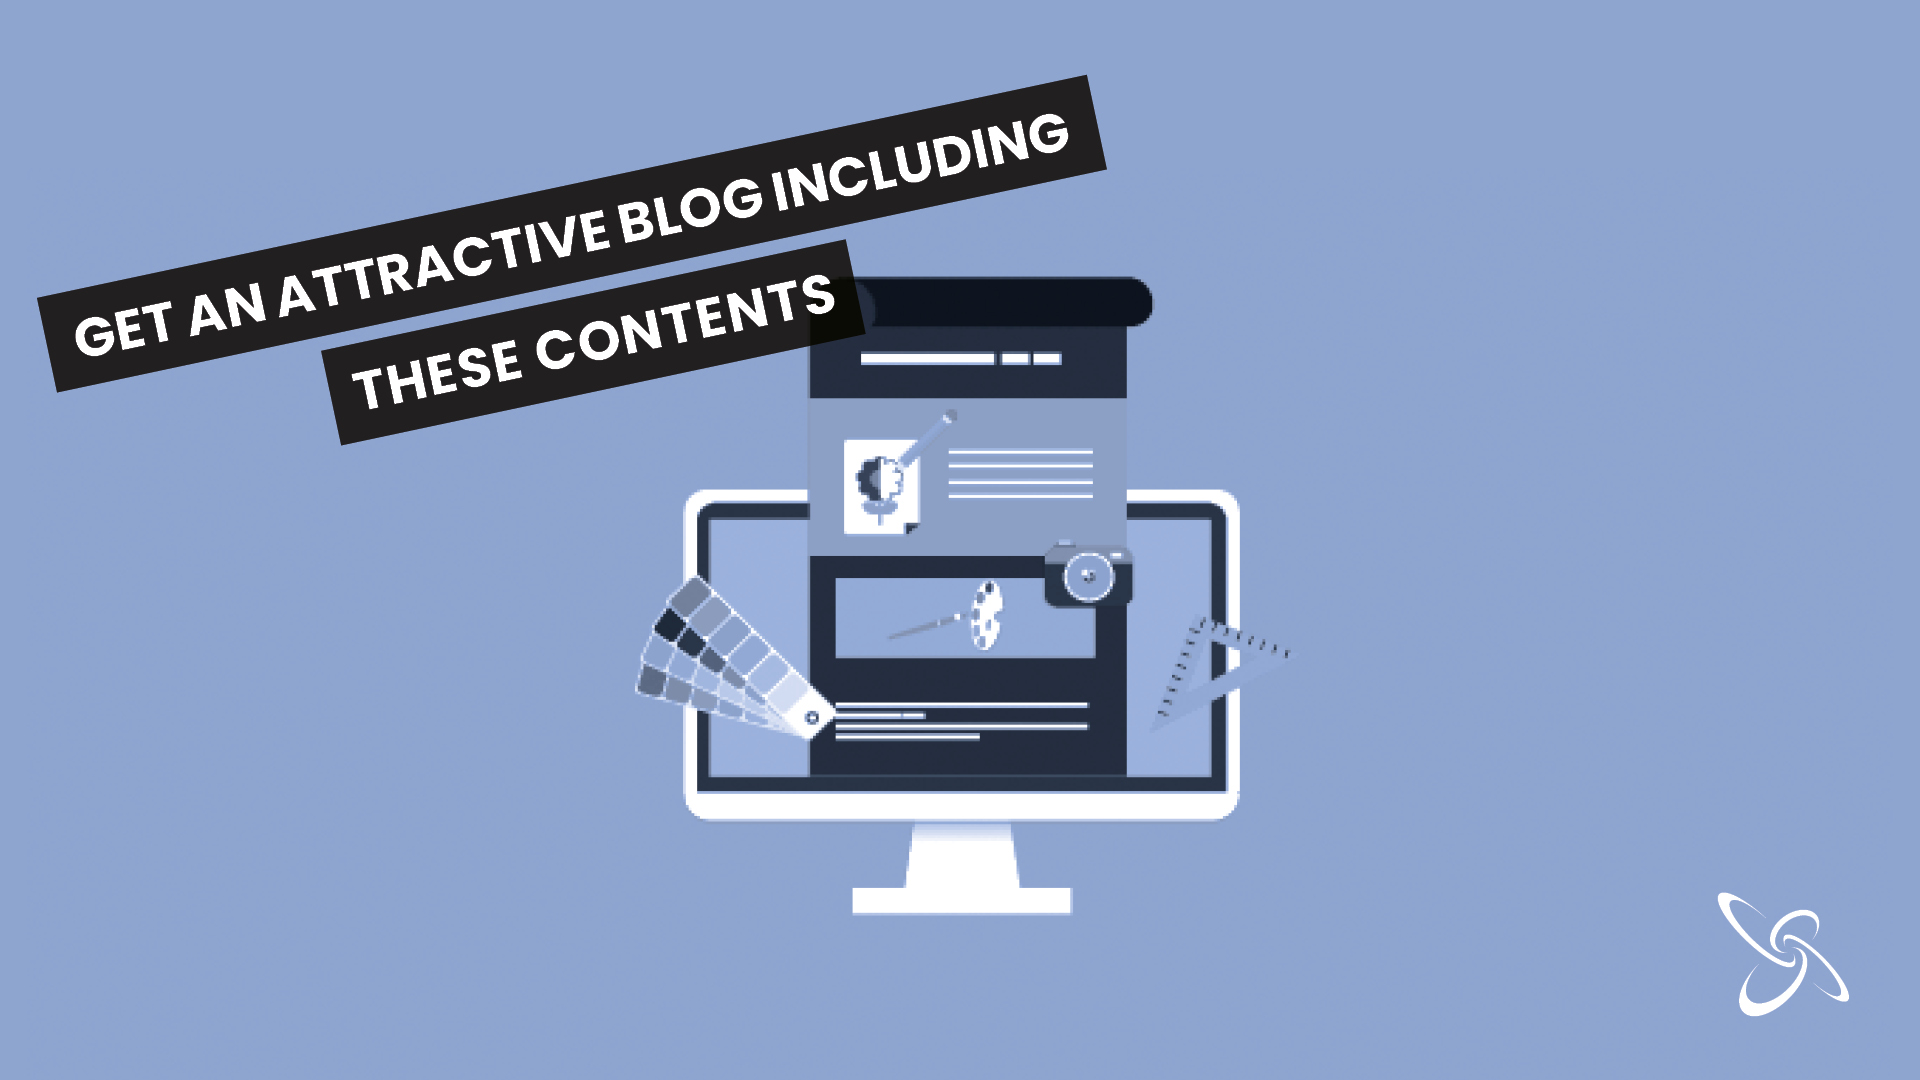 Get an attractive blog including these contents